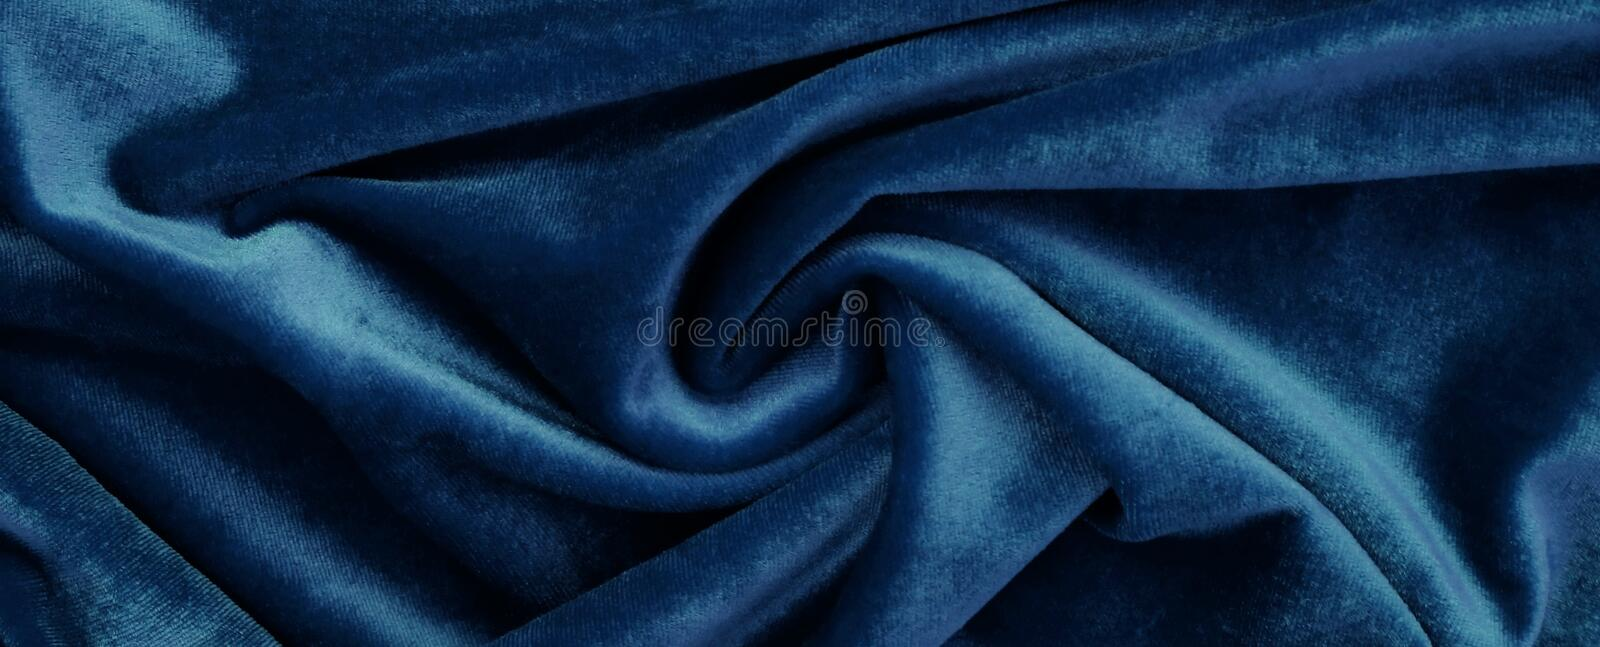 Velvet background, texture, blue color, expensive luxury, fabric, royalty free stock image